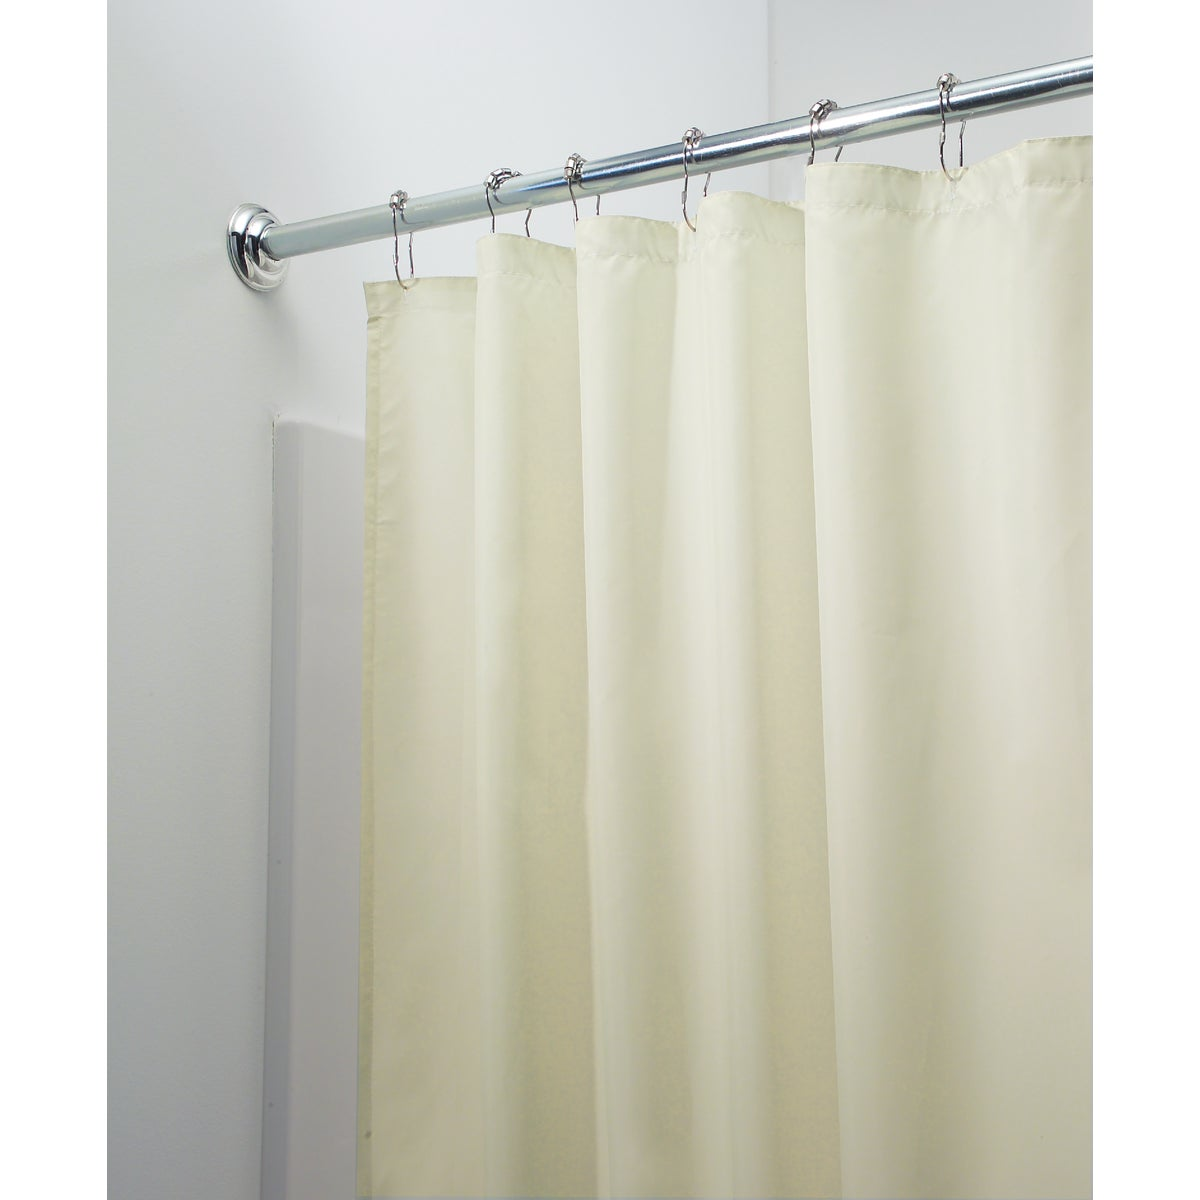 SND POLY SHOWER CURTAIN - 14655 by Interdesign Inc